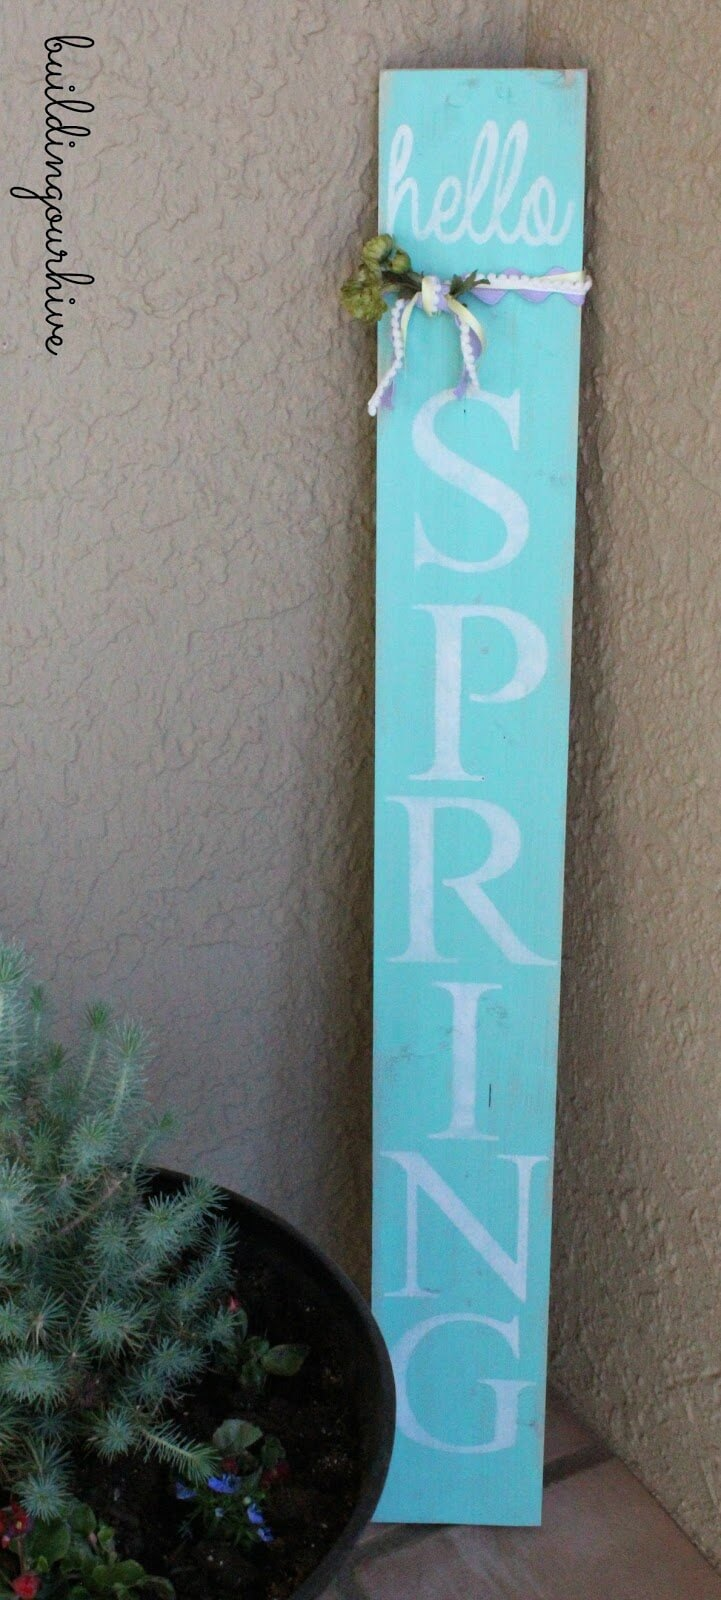 Spell it Out Decorative Holiday Board